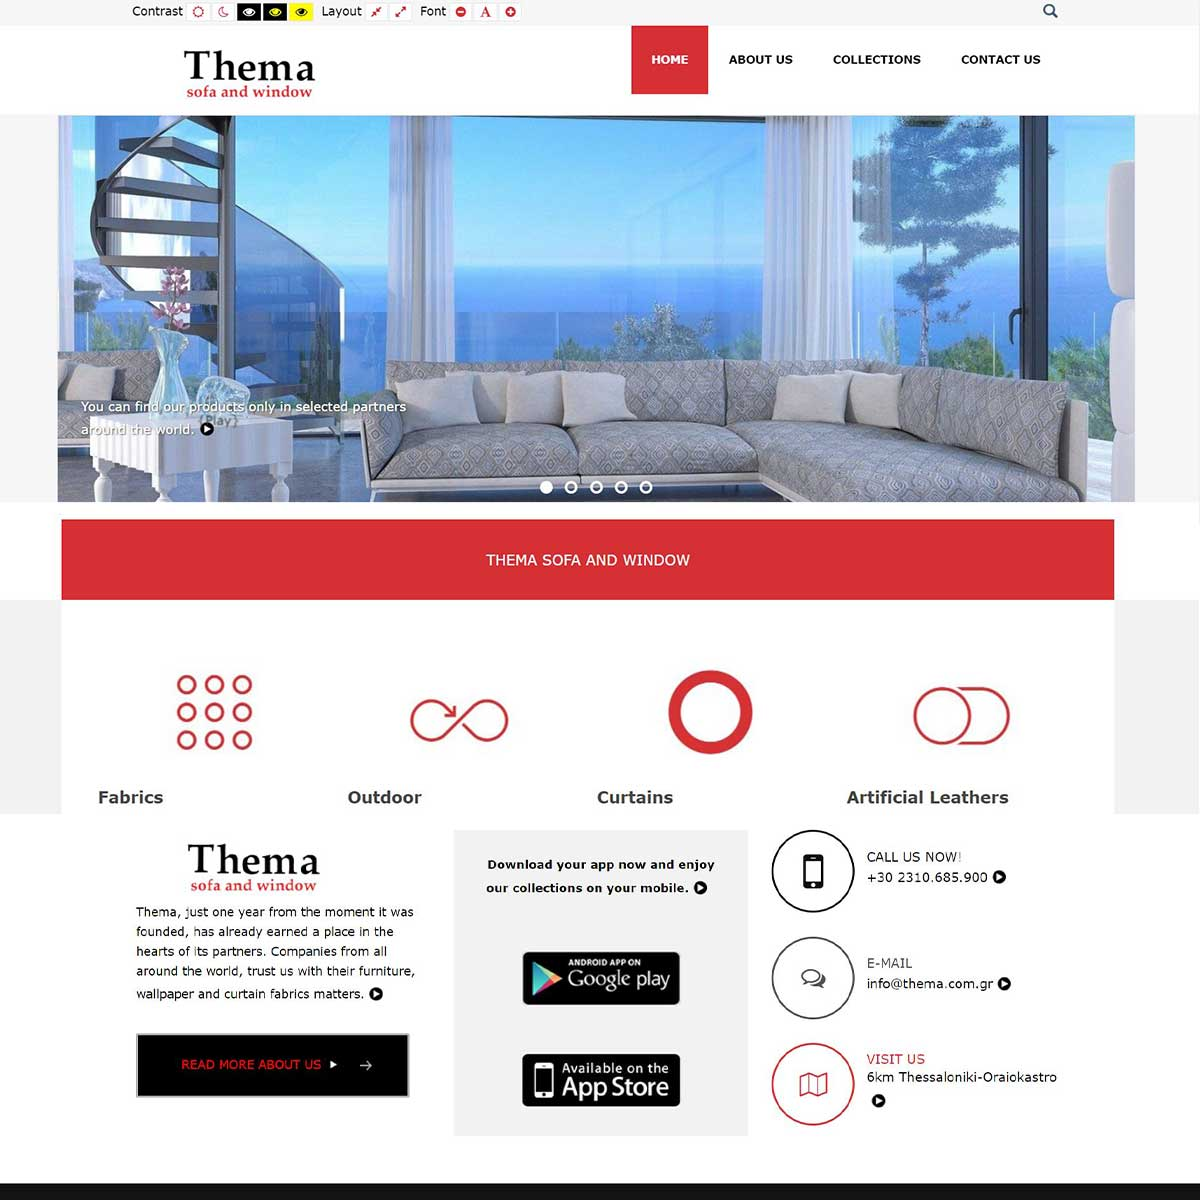 Thema Amea site